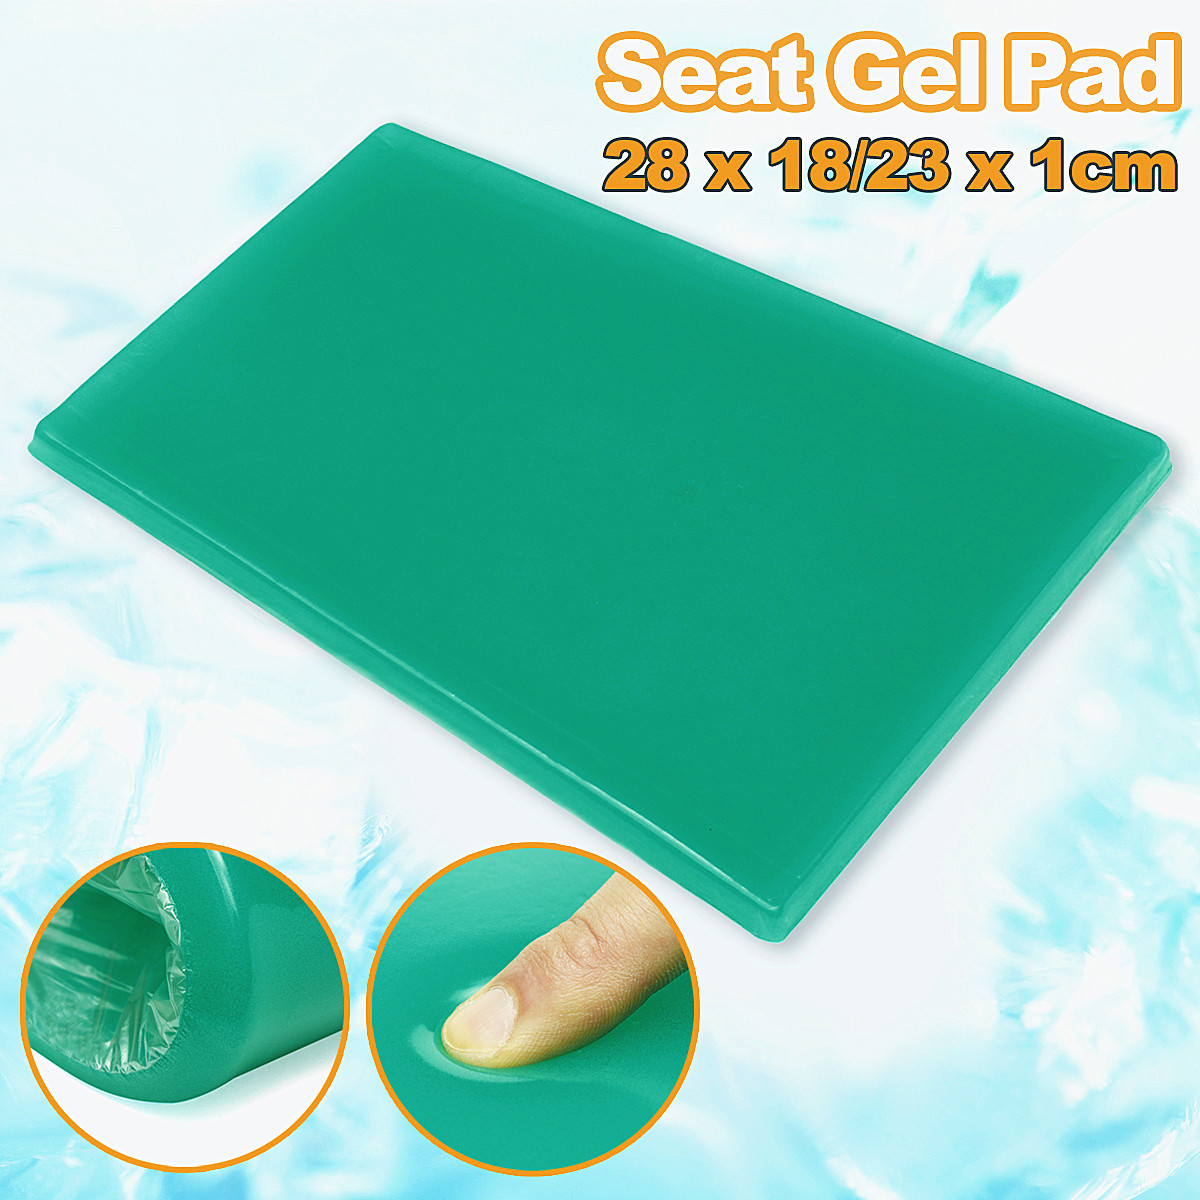 Gel Seat Cushion Pad Green Trapezoidal Cool For Motorcycle Sofa Chair Home Office